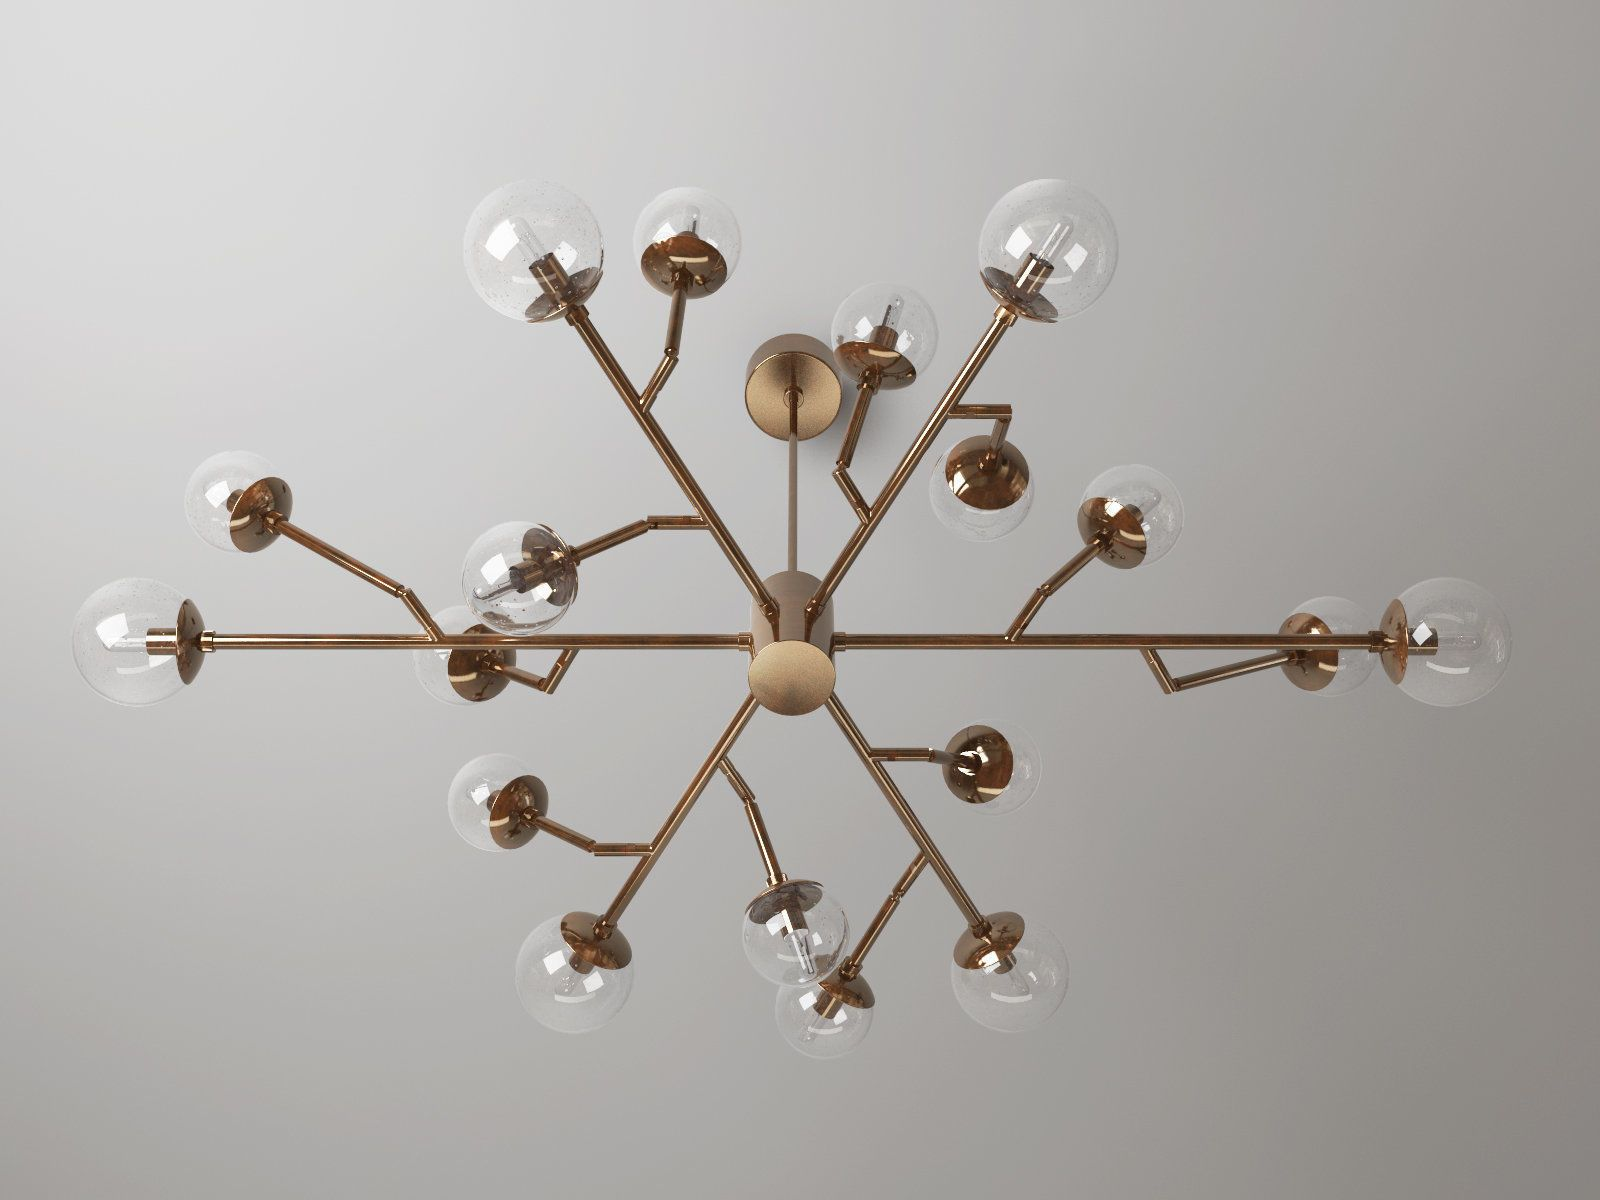 Dallas Chandelier 3D model